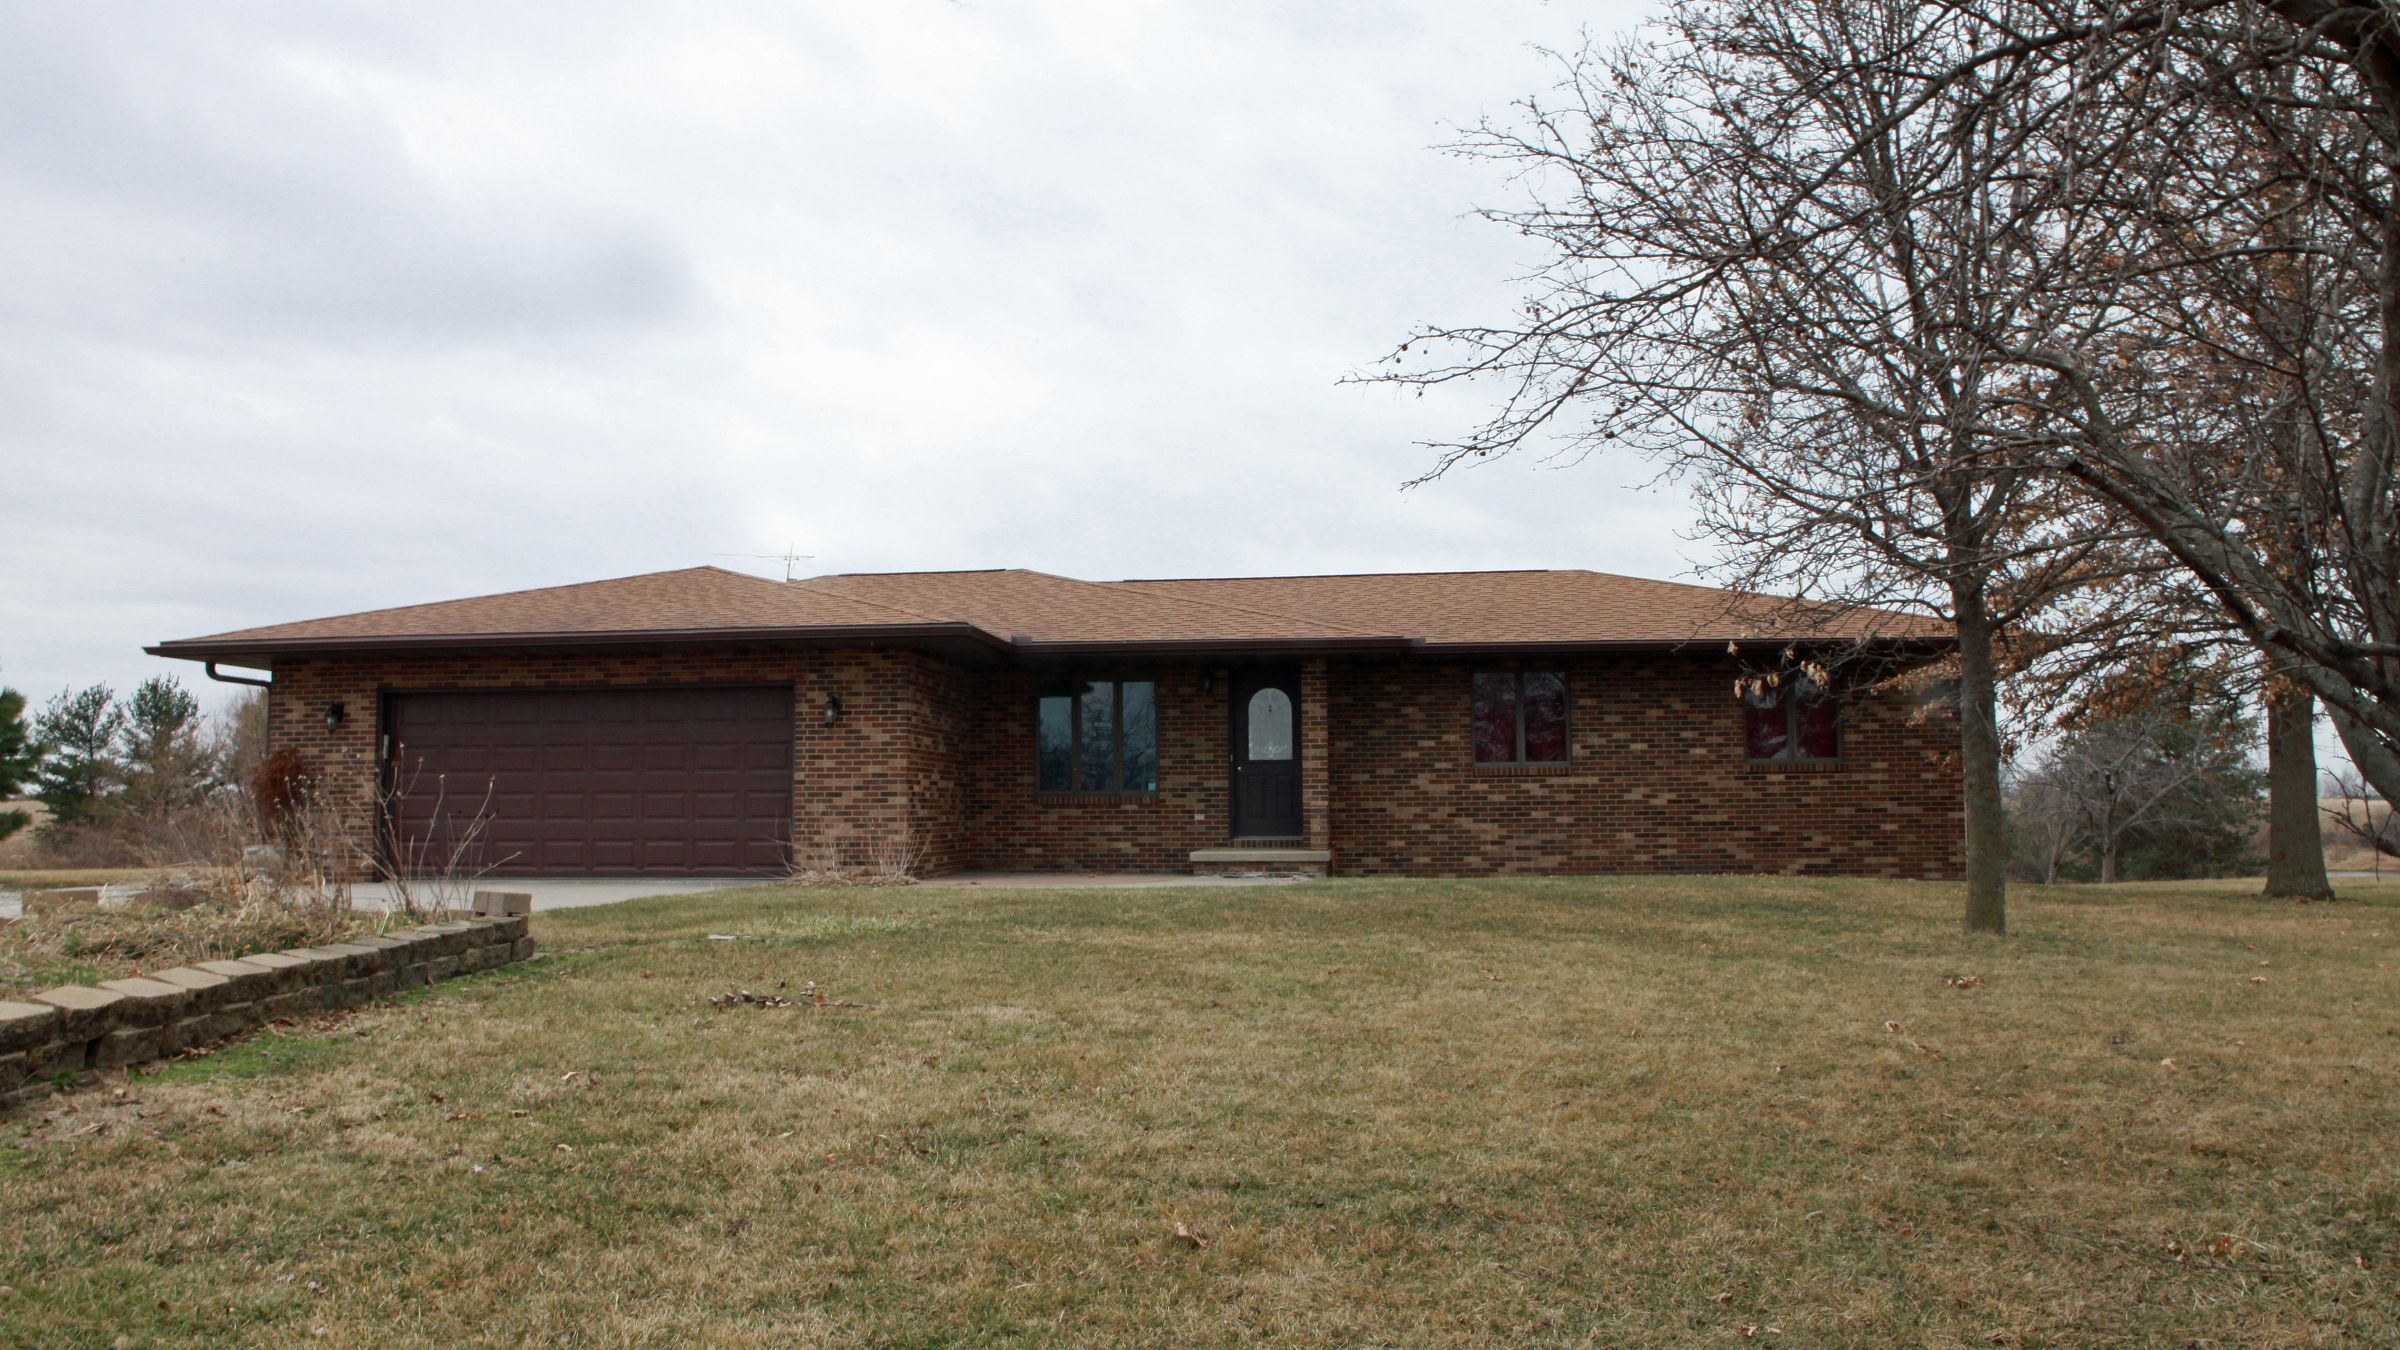 residential-land-lucas-county-iowa-25-acres-listing-number-15402-1-2021-03-10-174255.jpg